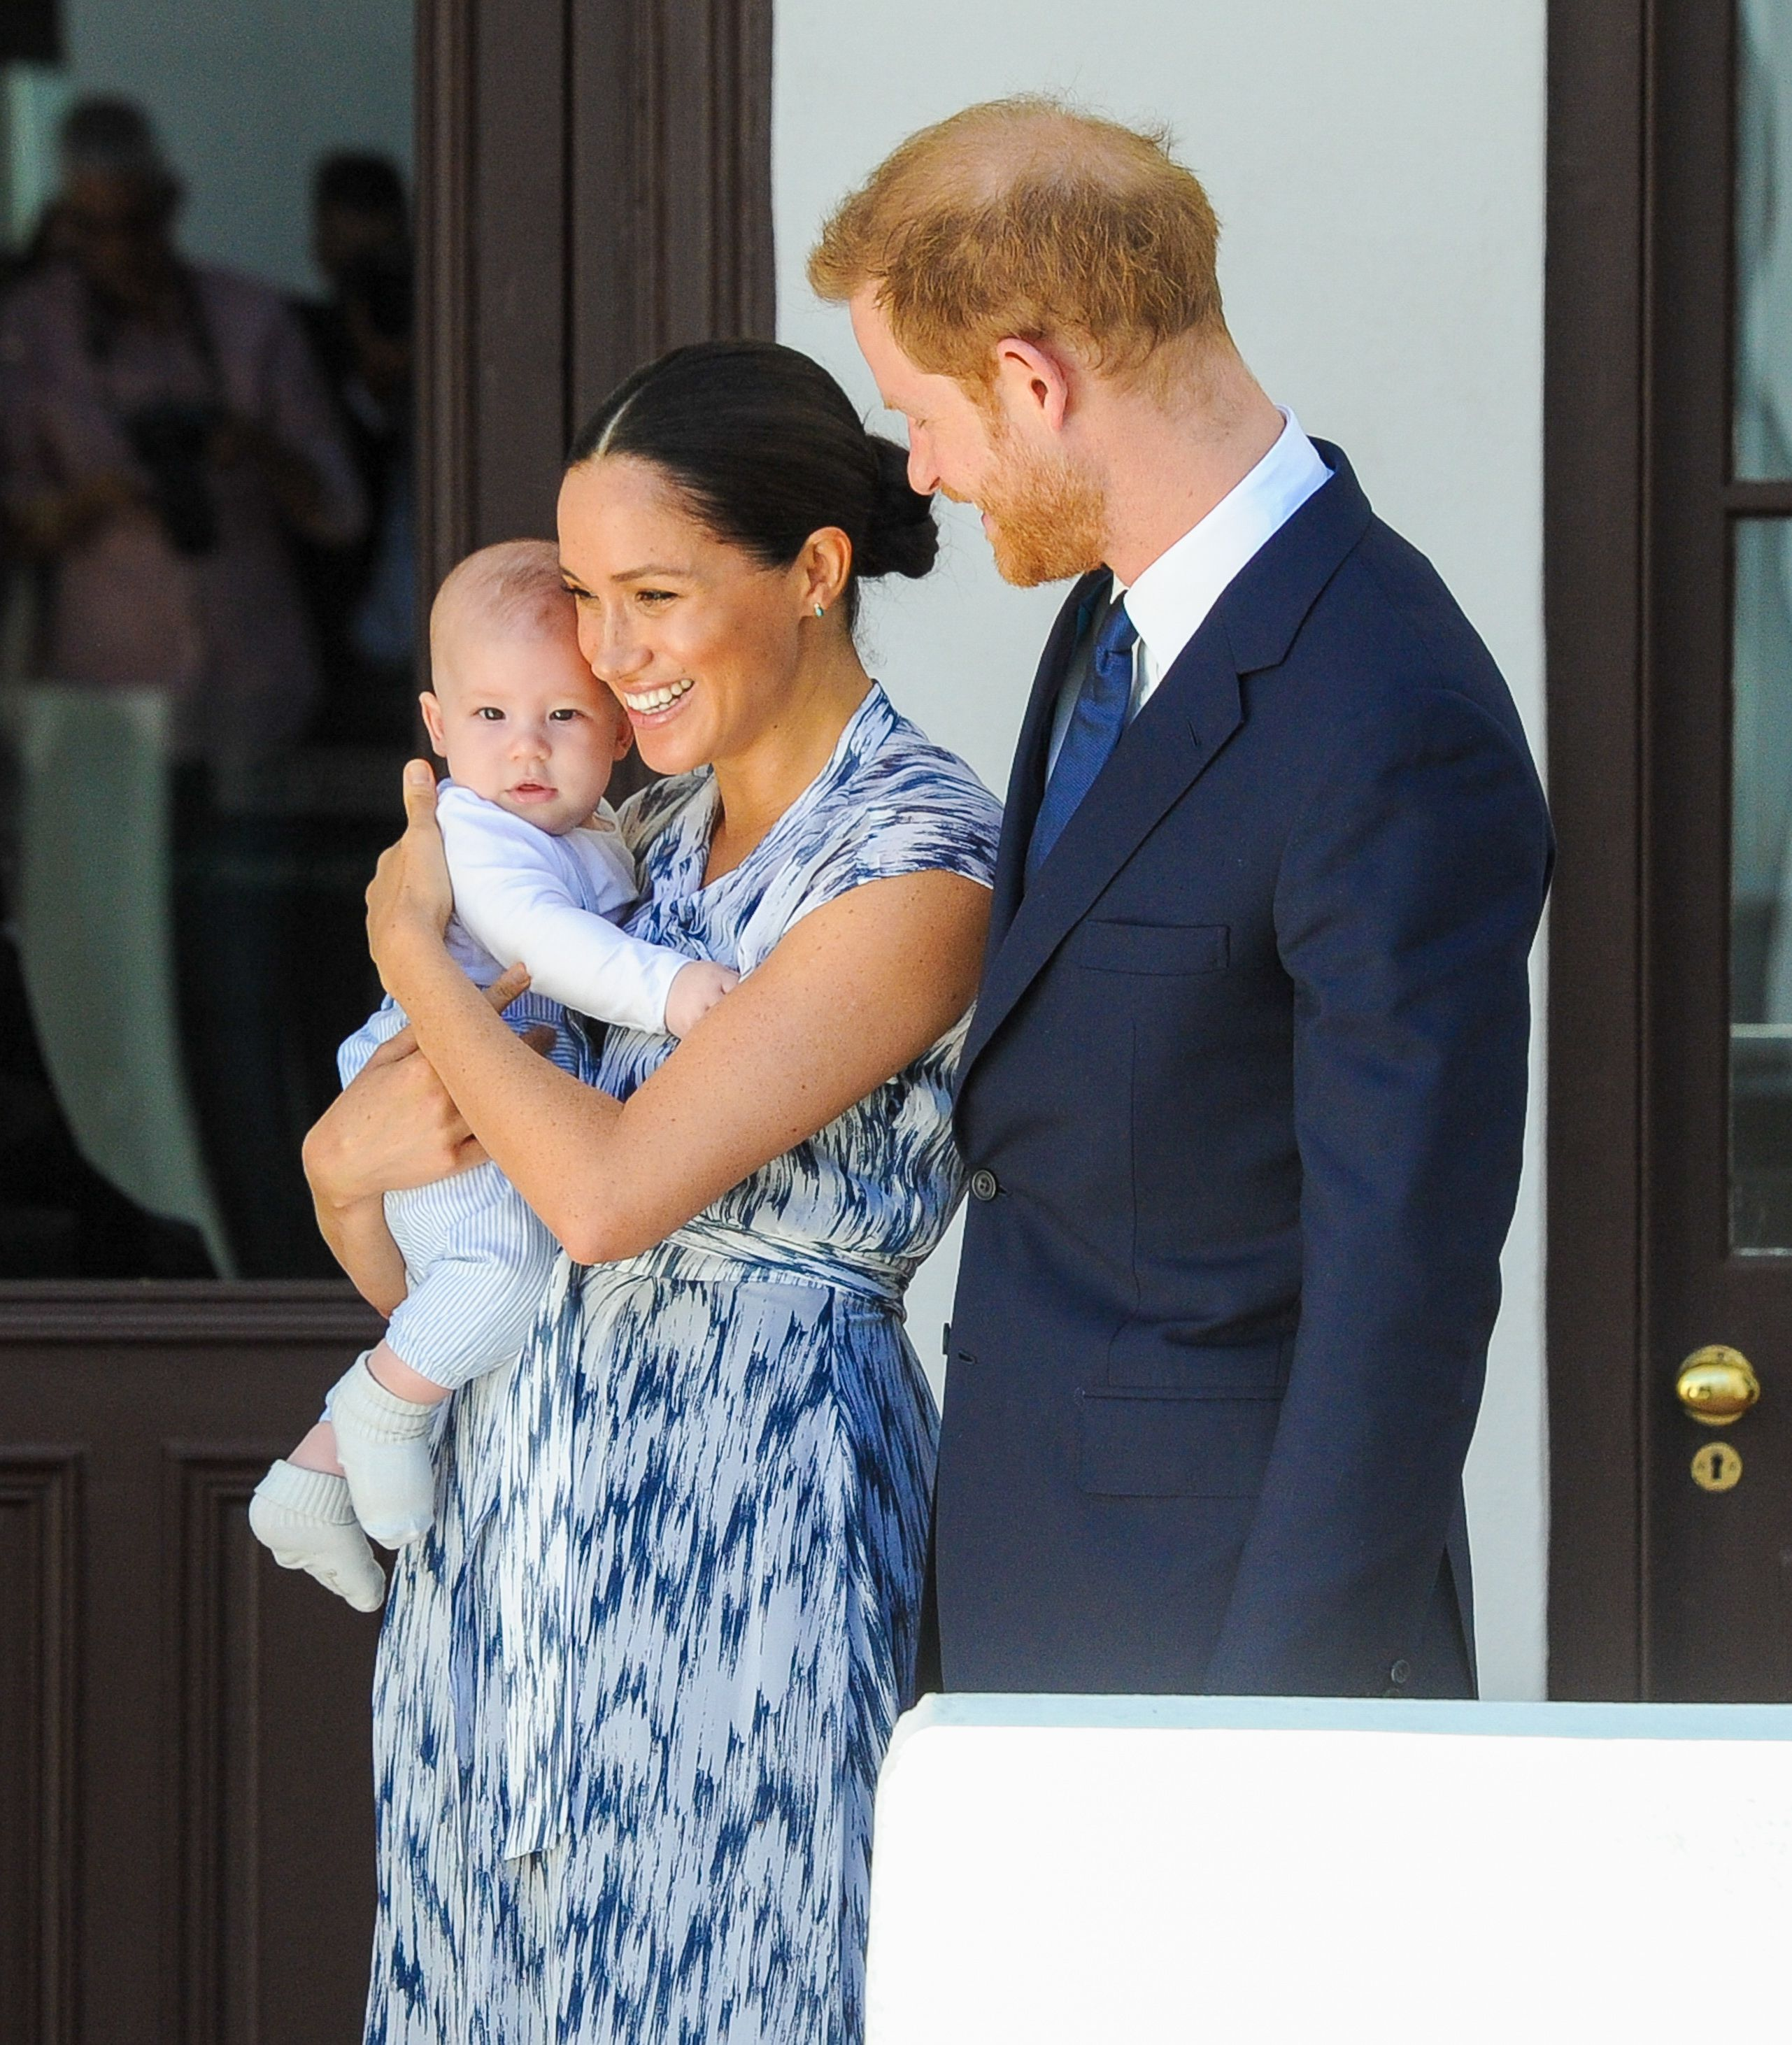 Duchess Meghan and Prince Harry 'Have Considered' Moving to Canada With Baby Archie